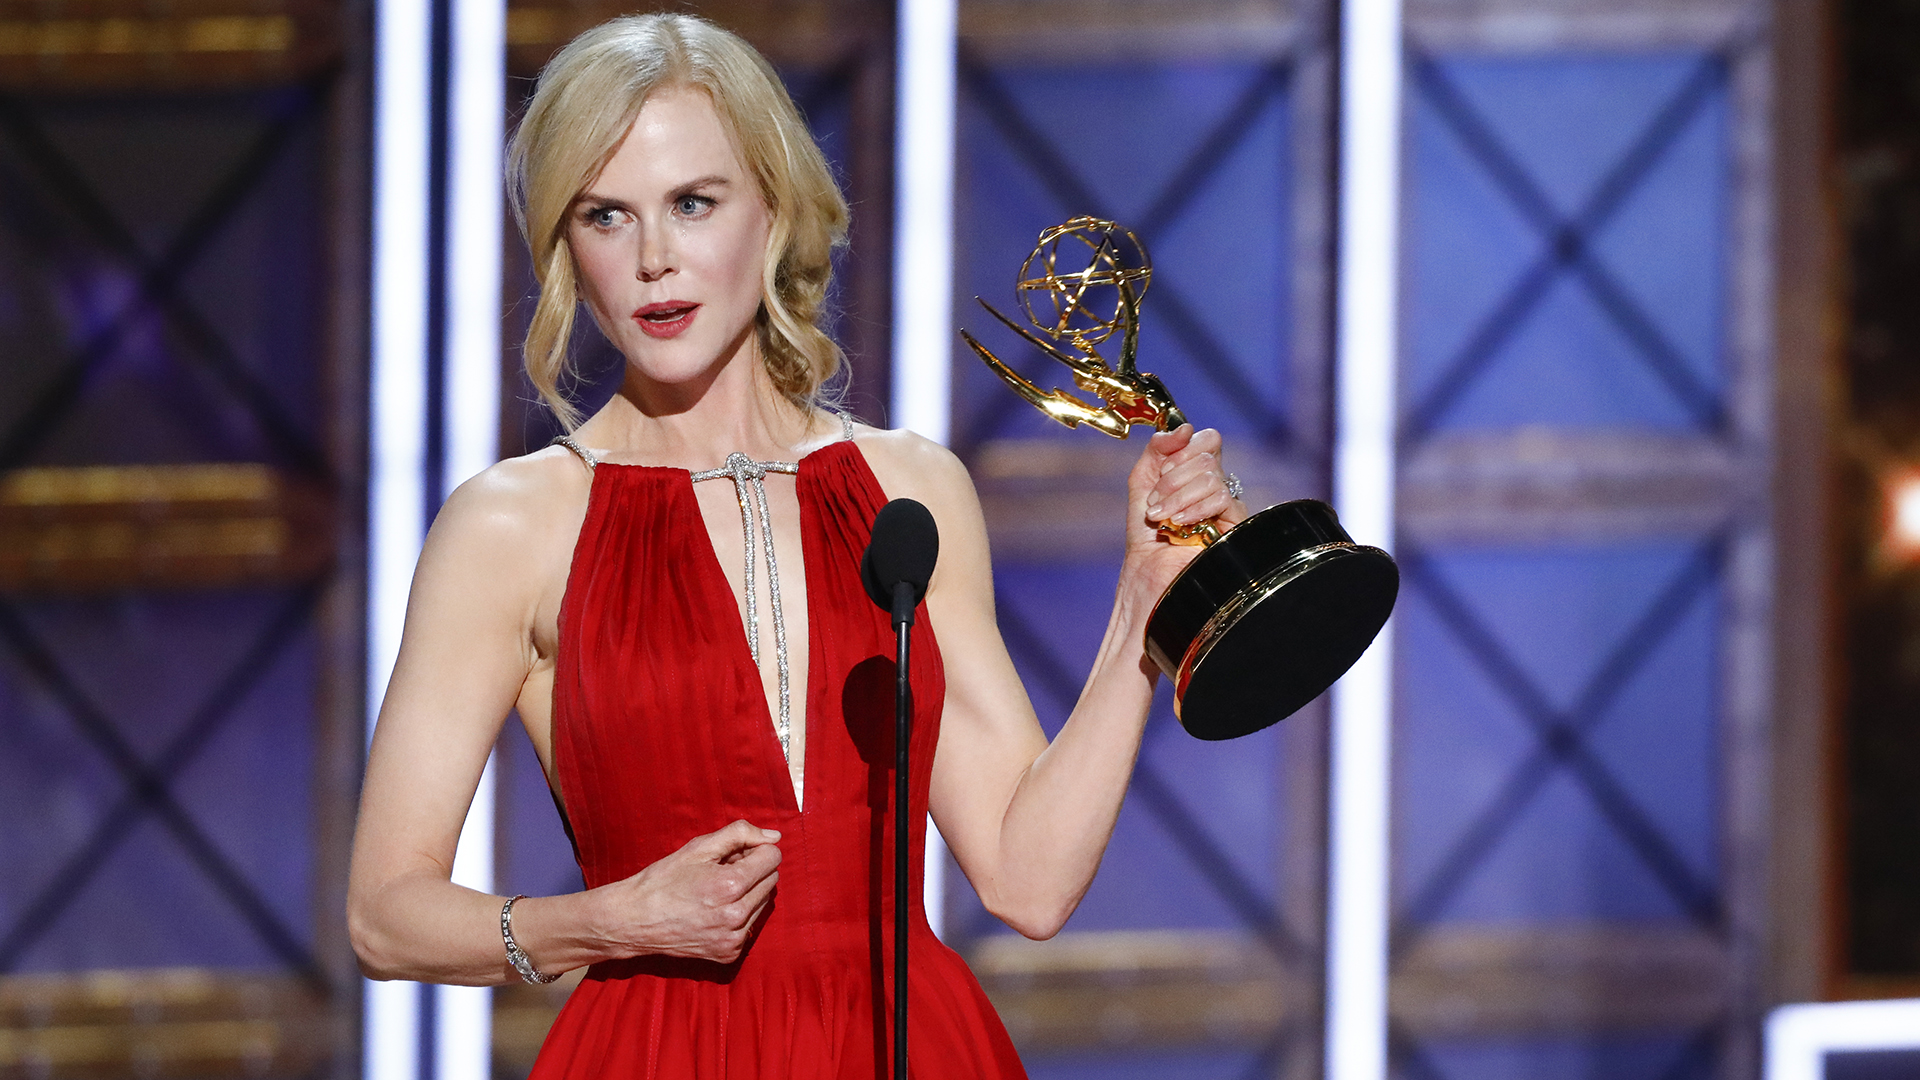 Nicole Kidman wins Outstanding Lead Actress in a Limited Series or a Movie at The 69th Emmy Awards.